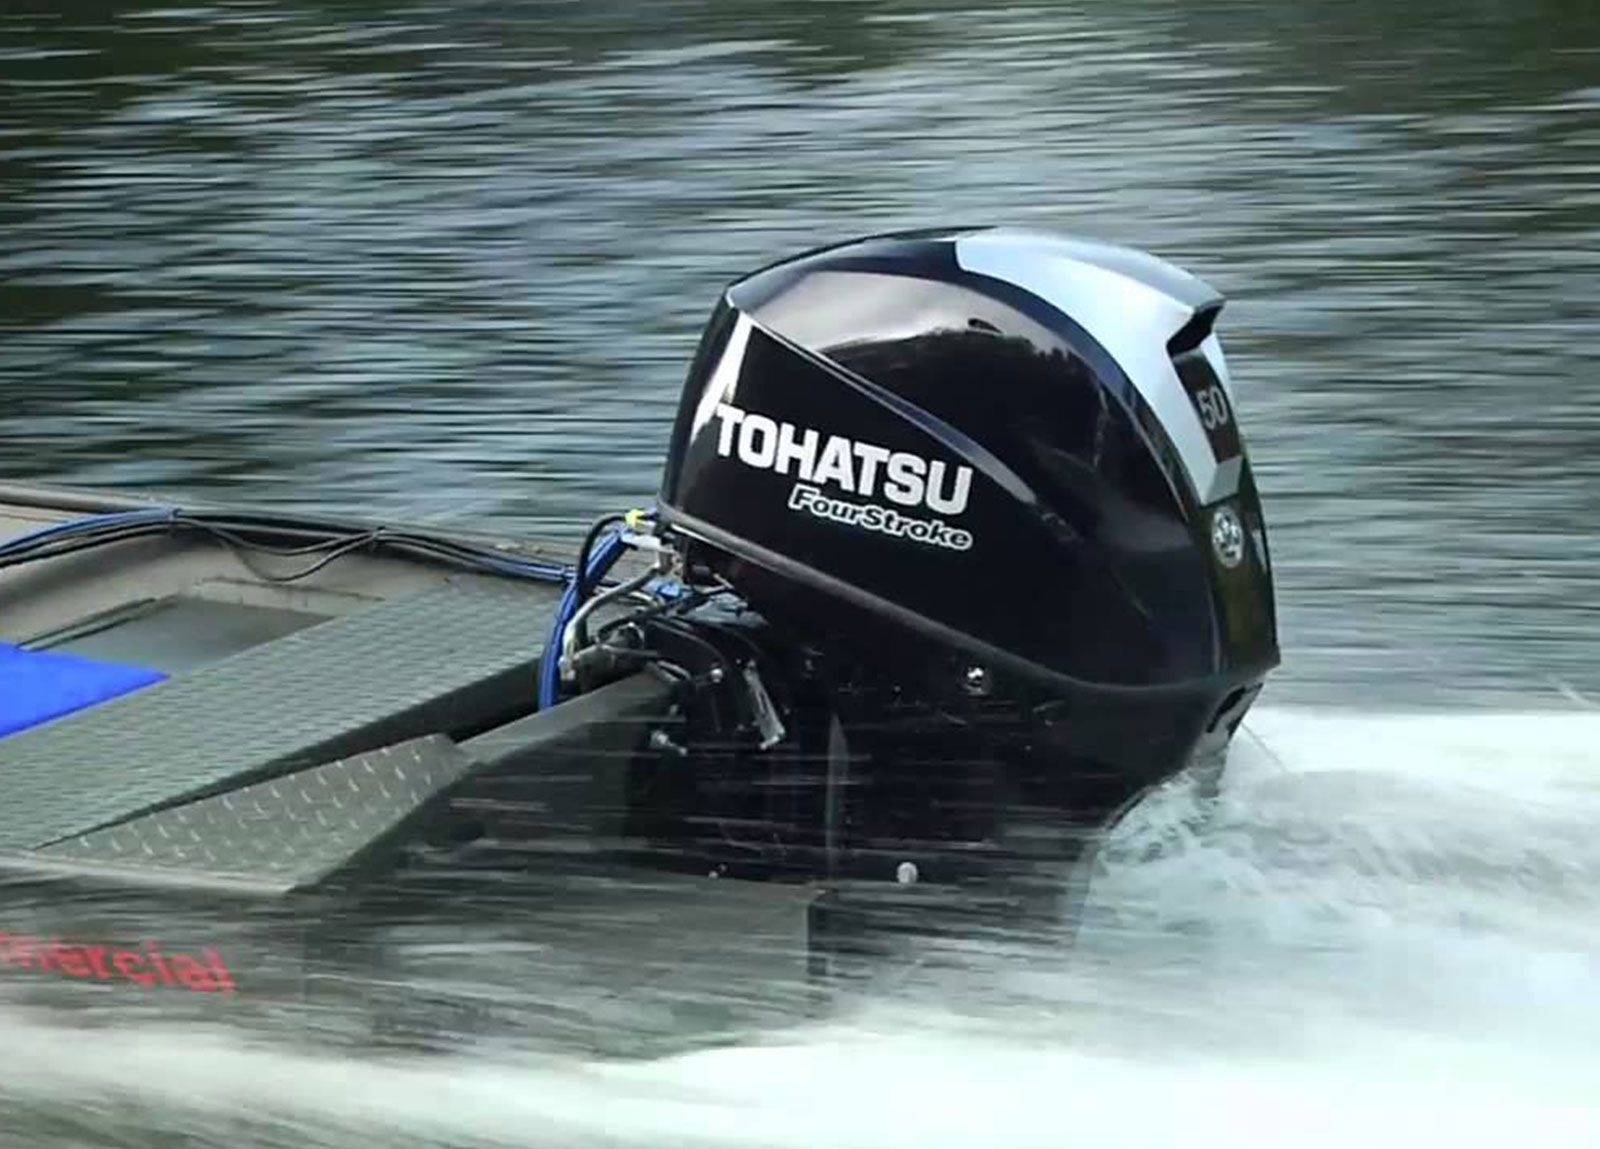 New Outboards - Tohatsu Outboard Motors